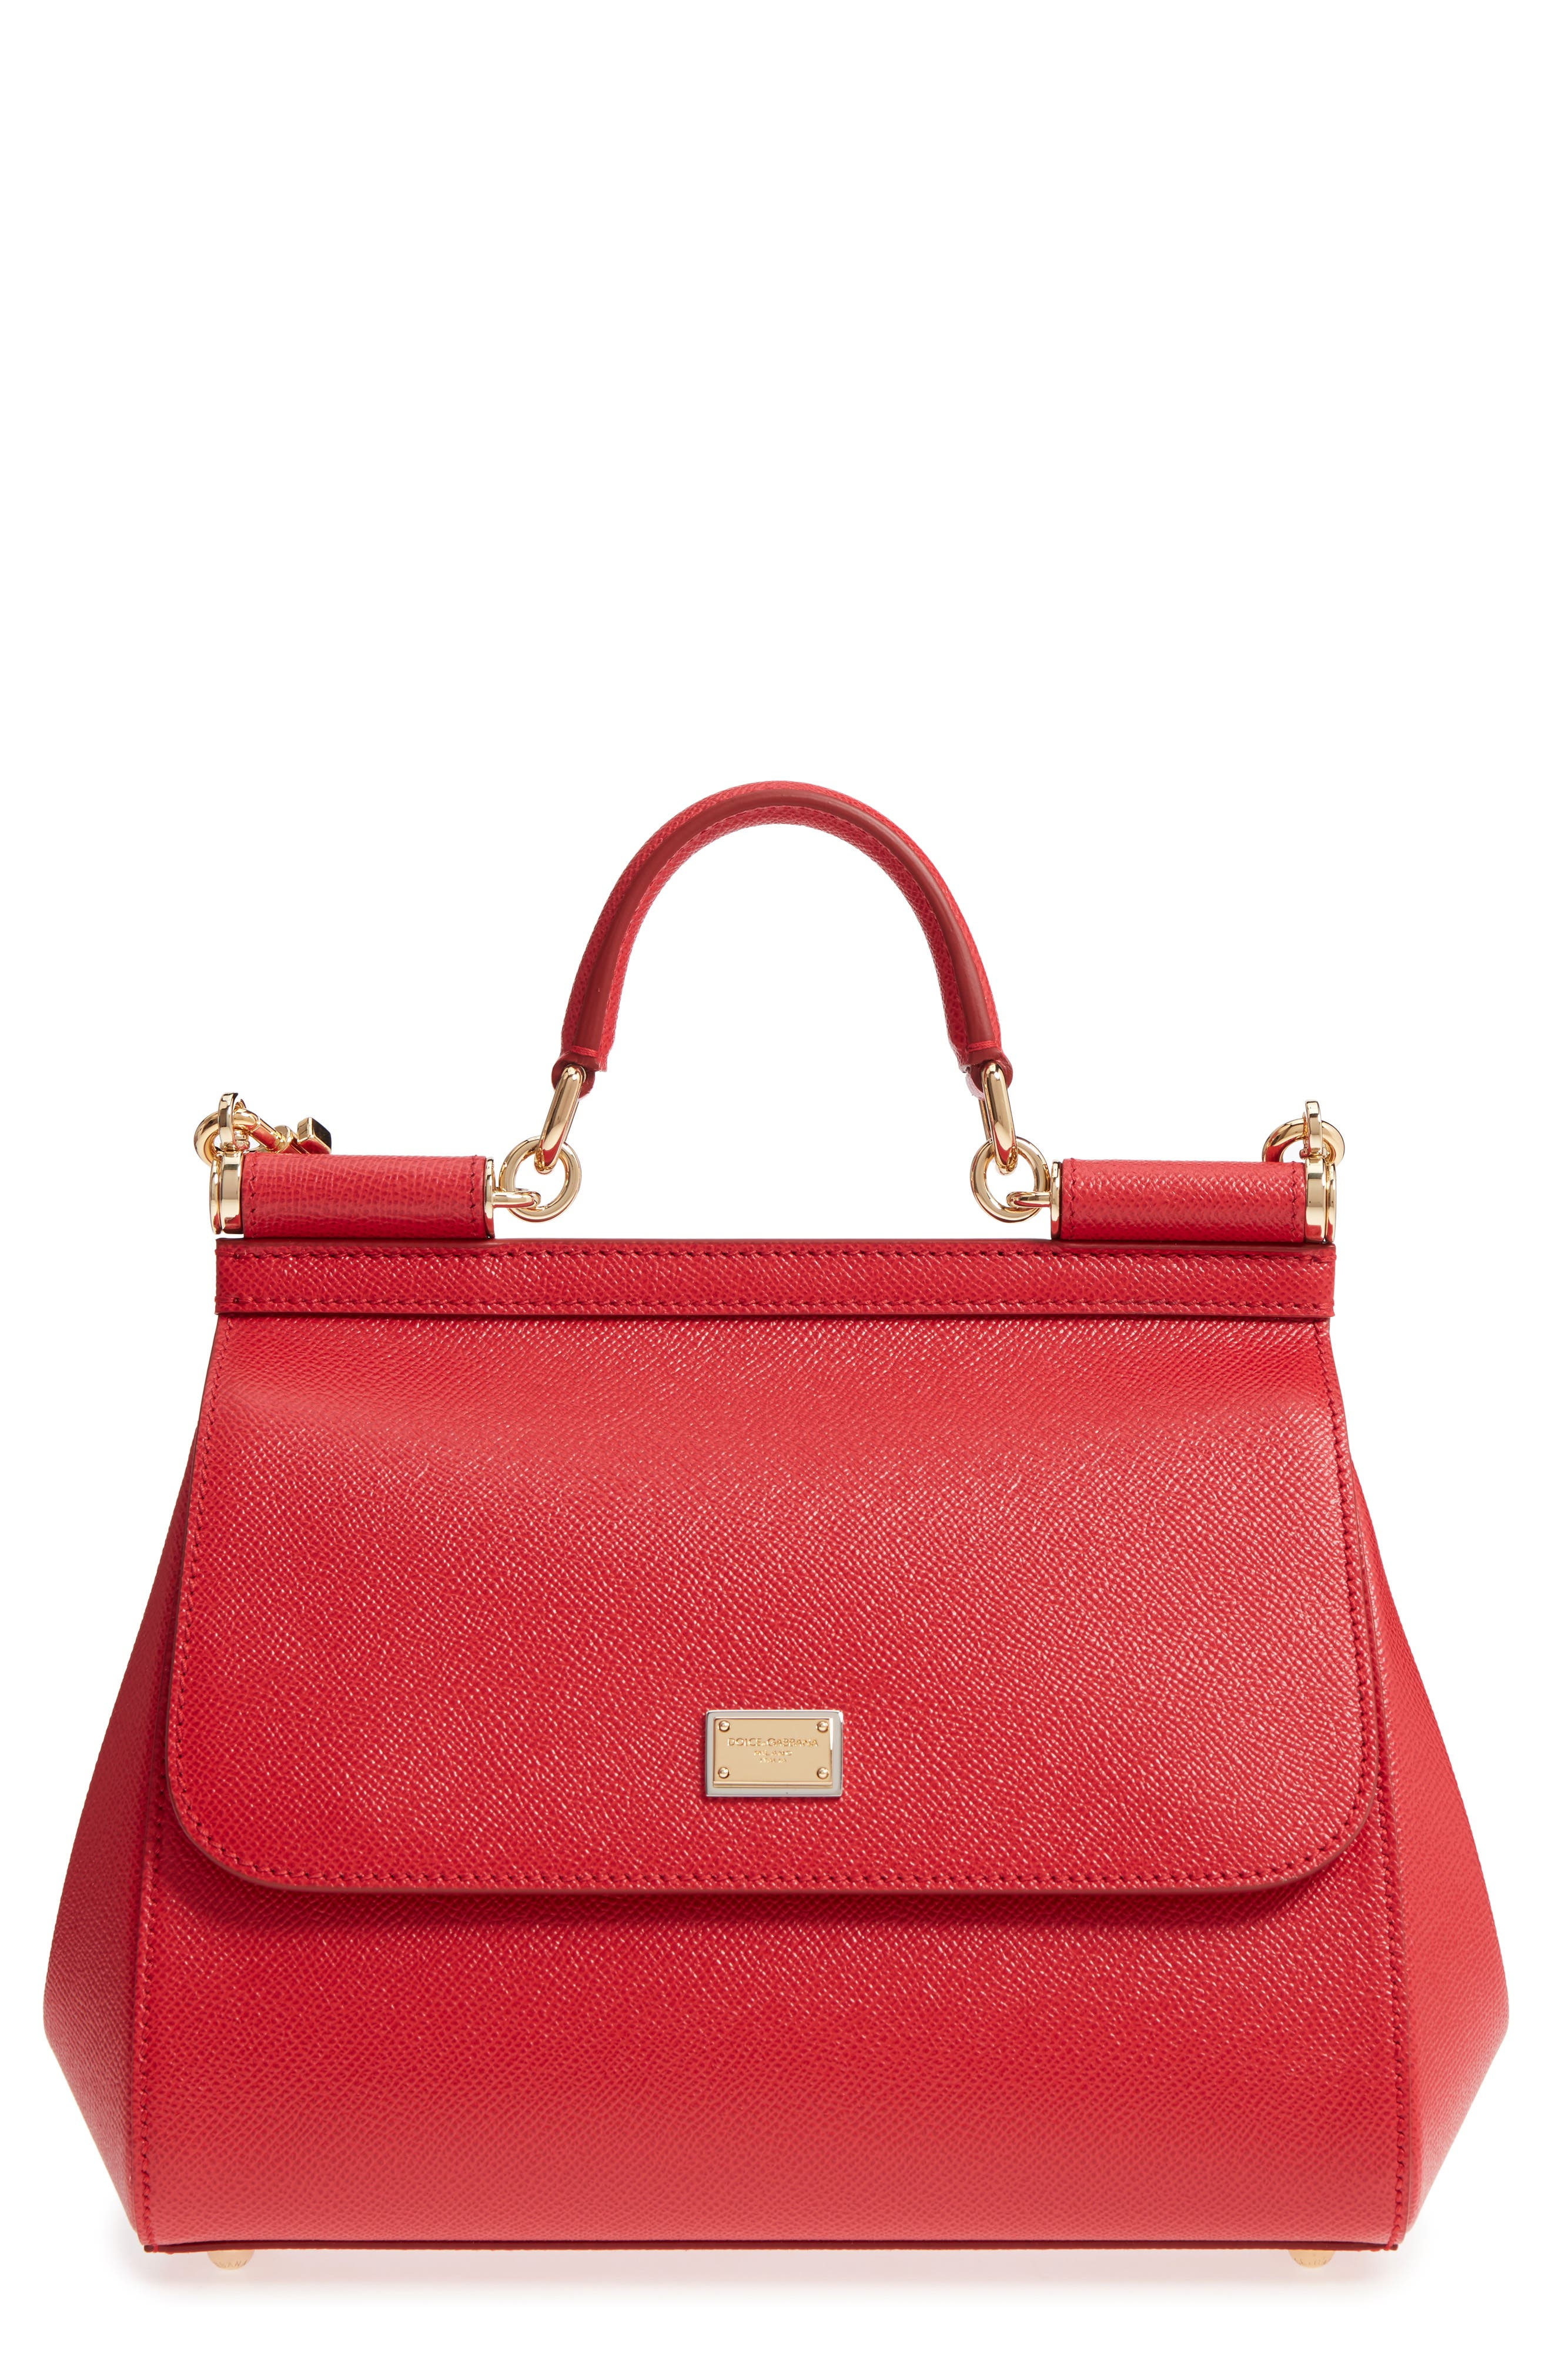 'Small Miss Sicily' Leather Satchel,                         Main,                         color, RED